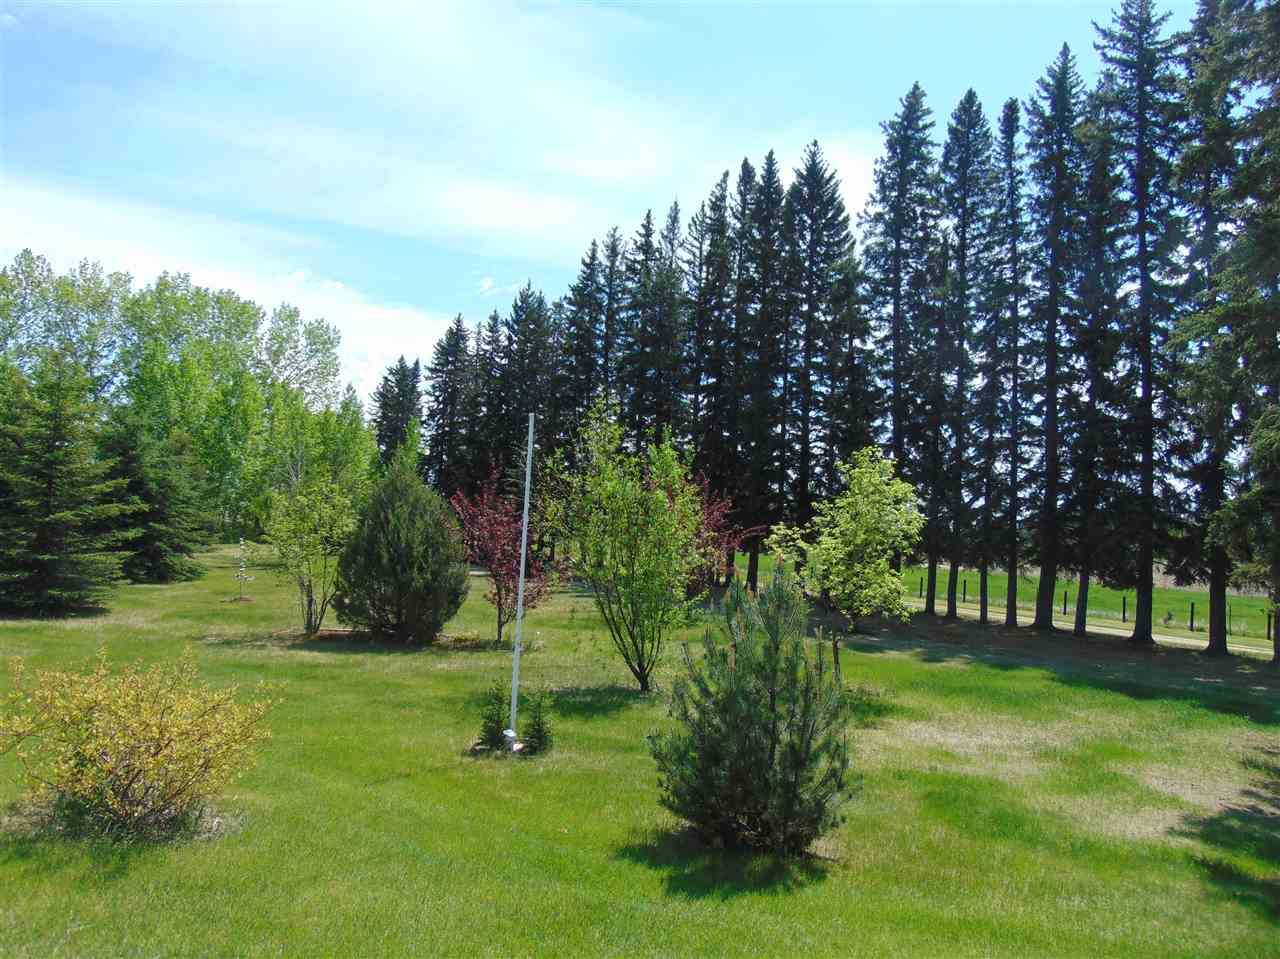 Photo 24: 61124 Rg Rd 253: Rural Westlock County House for sale : MLS(r) # E4065150